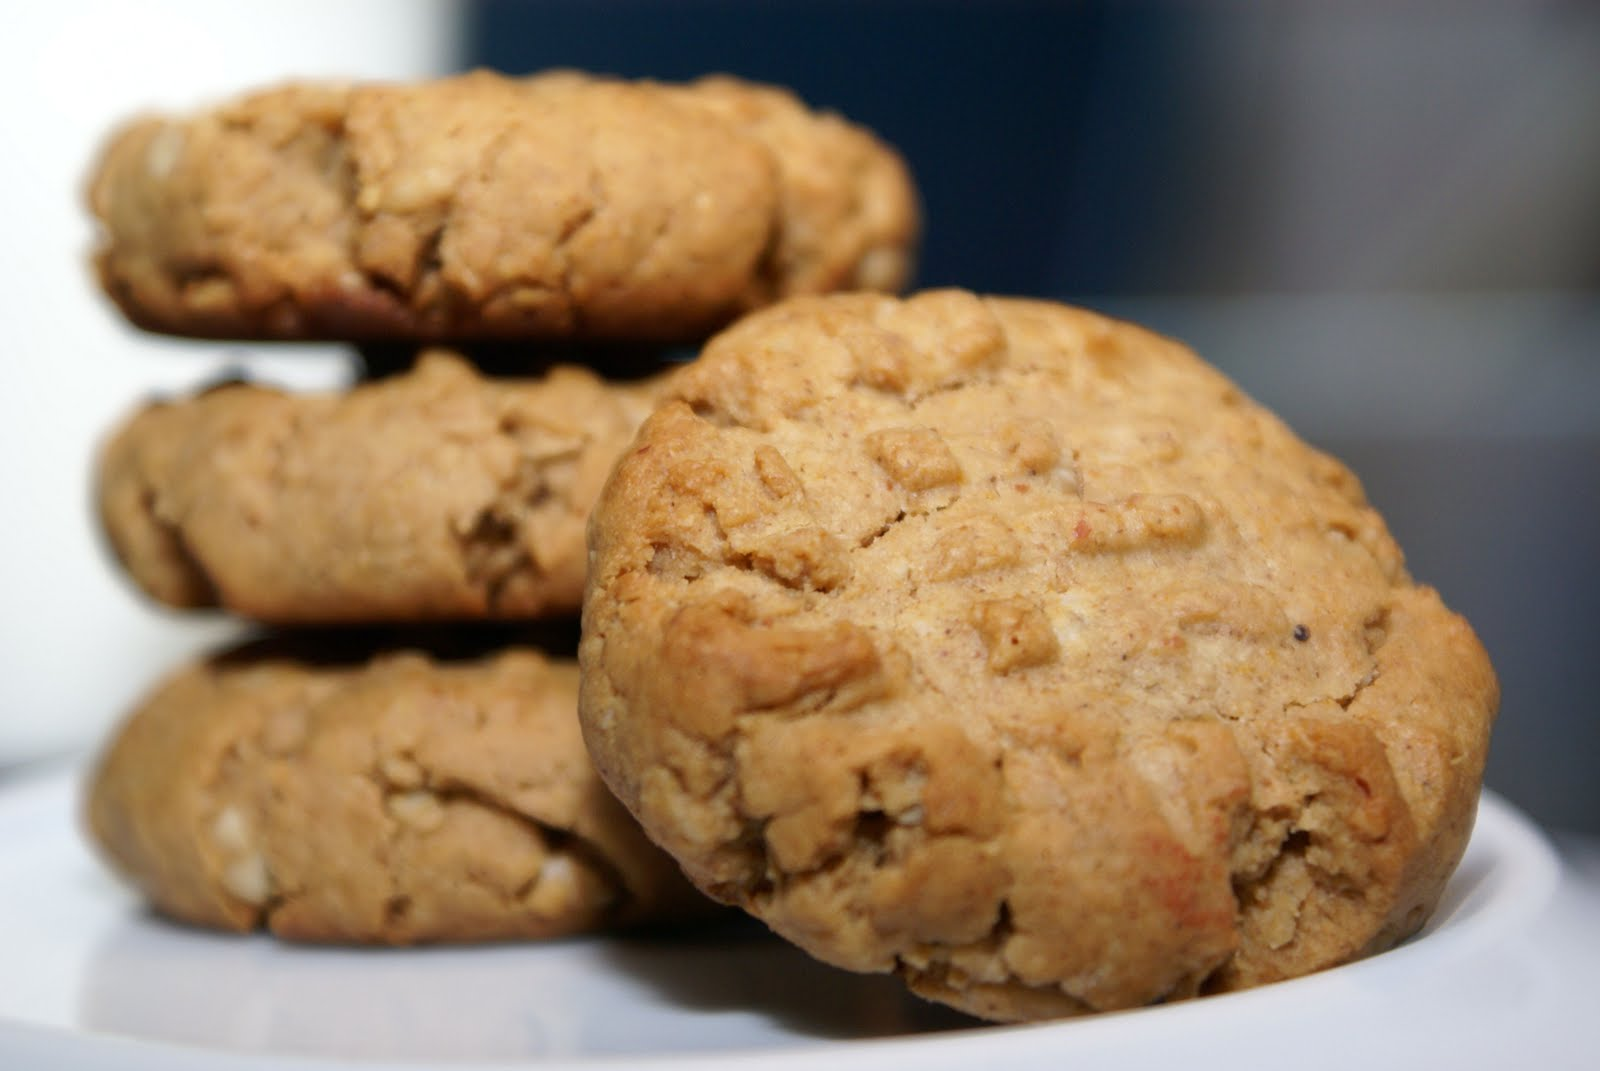 ... and don't forget to breathe: Vegan Peanut Butter Cookies (wheat-free